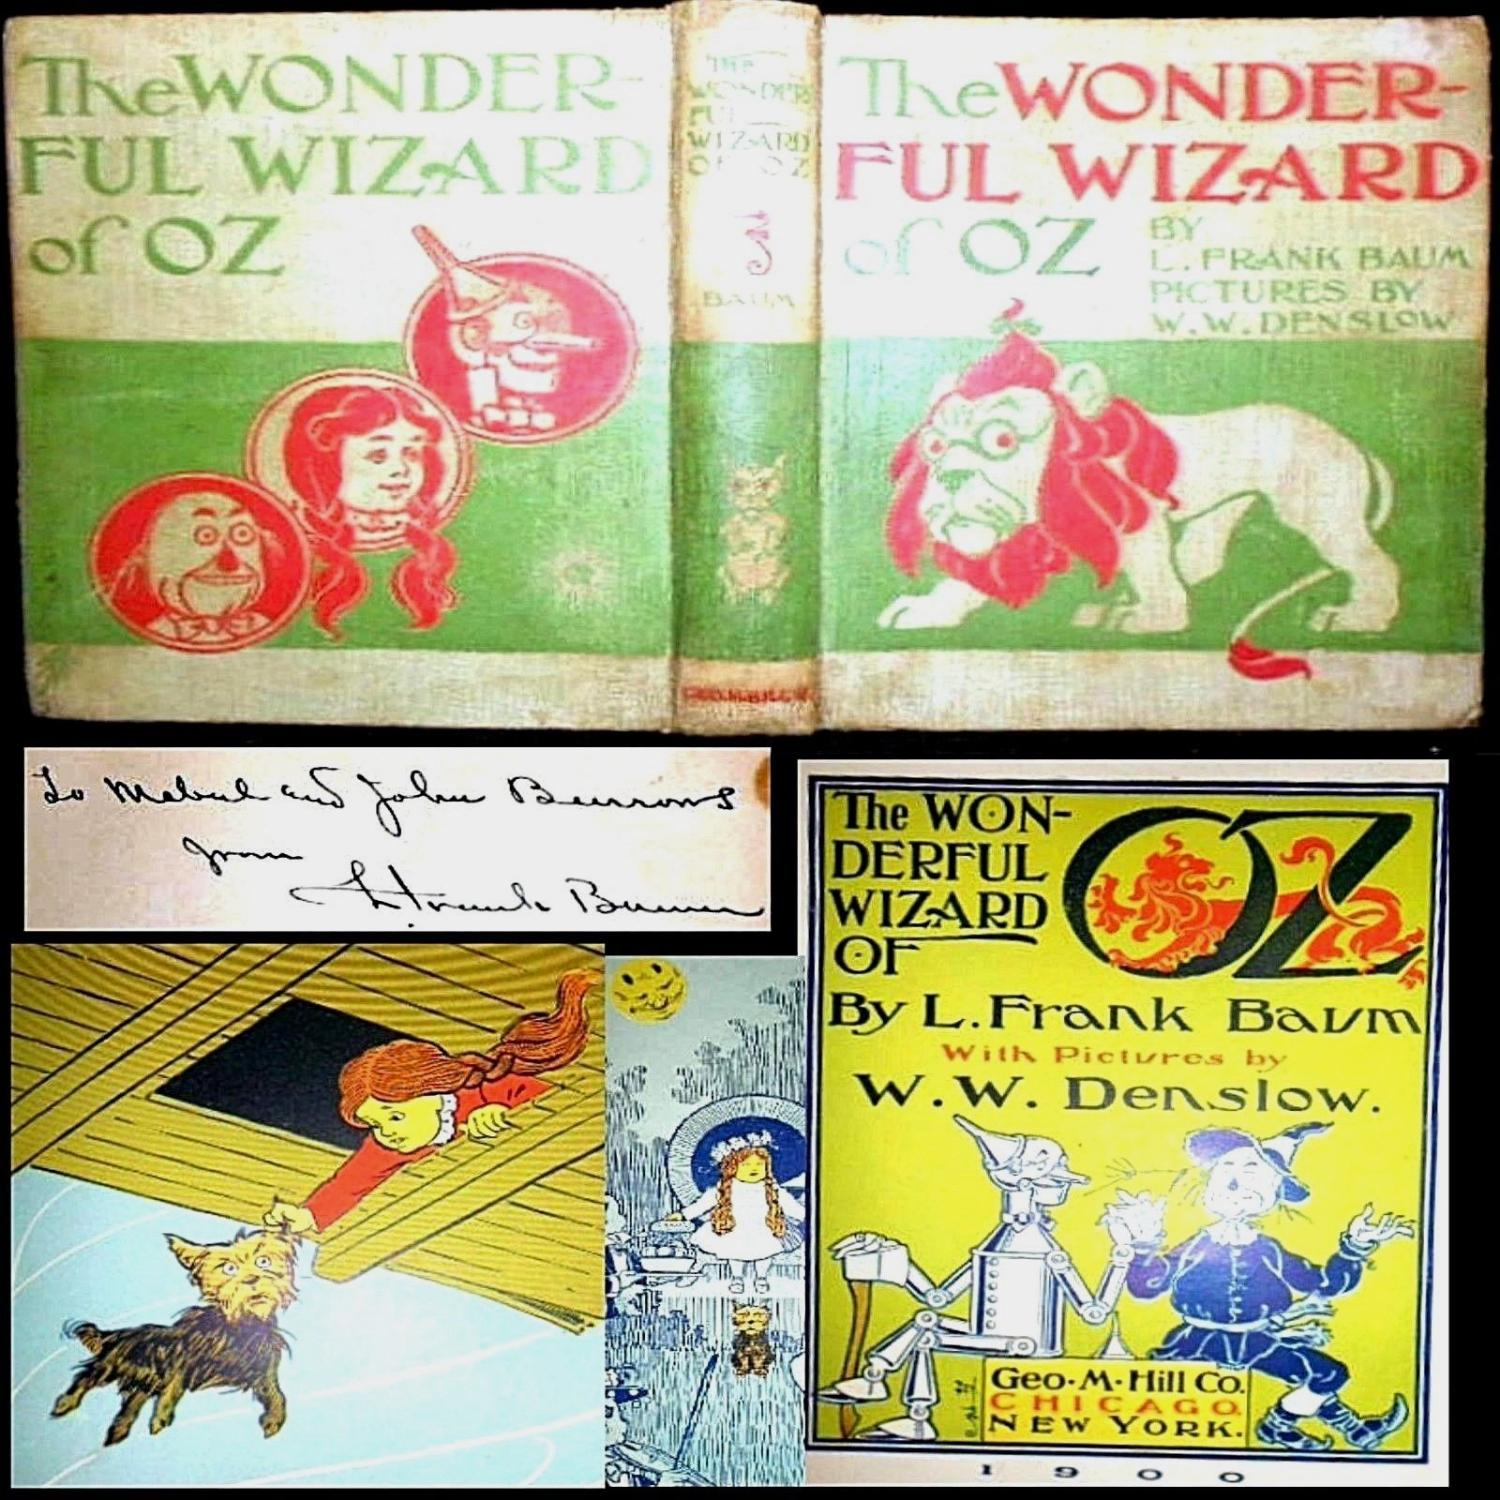 1899 THE WONDERFUL WIZARD OF OZ SIGNED L. FRANK BAUM 1ST EDITION 24 COLOR ILLUSTRATIONS FANTASY CHILDREN'S MOVIE TOTO L. Frank Baum Good Hardcover